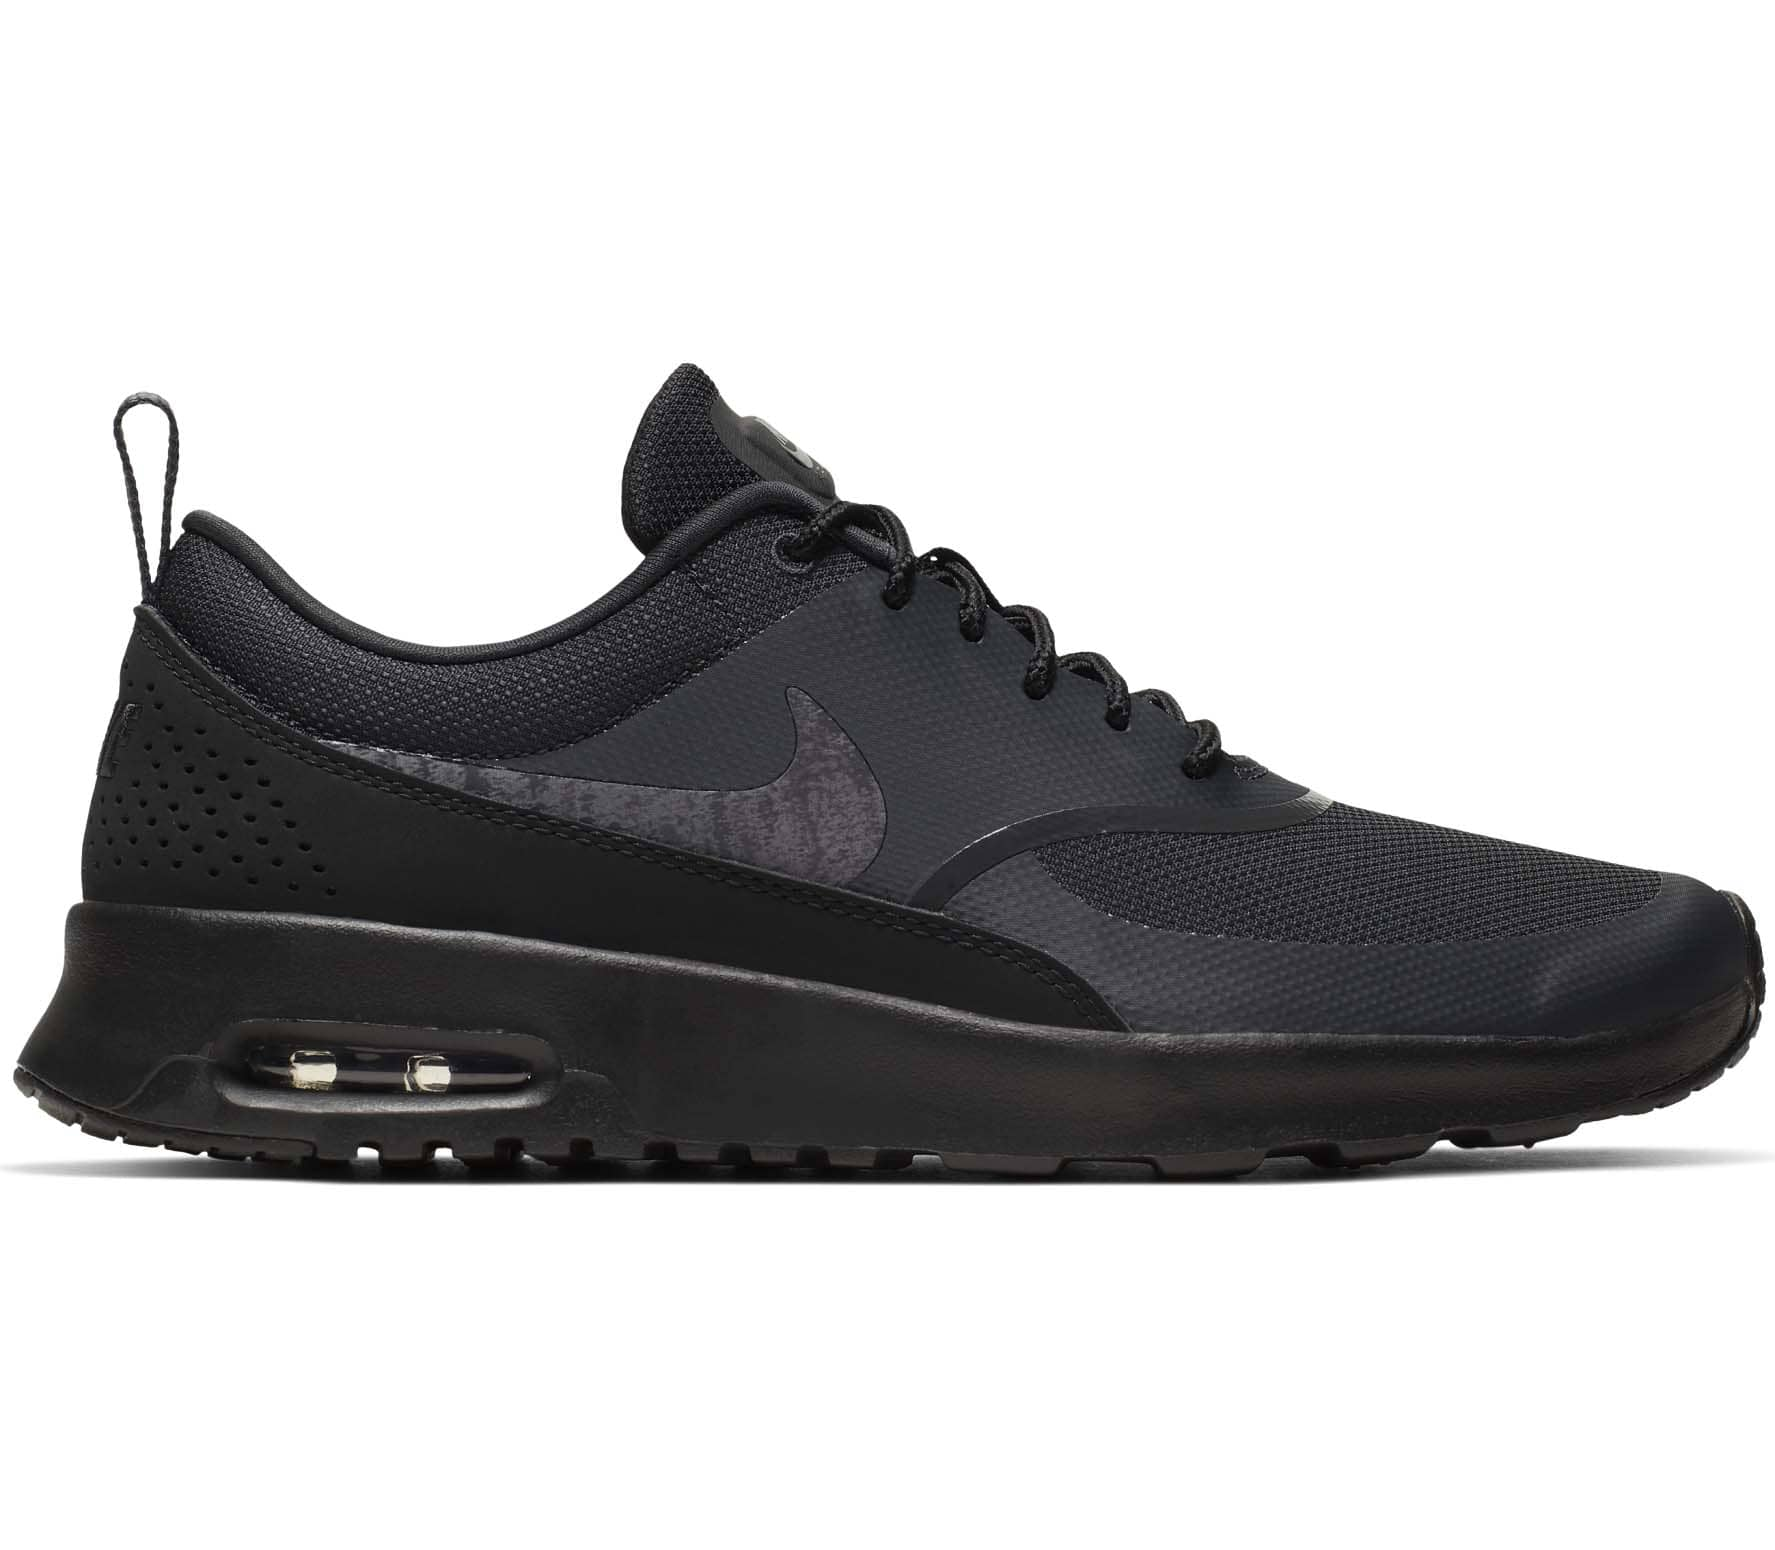 Nike Air Max Thea Black Leather sneakers. Women's US